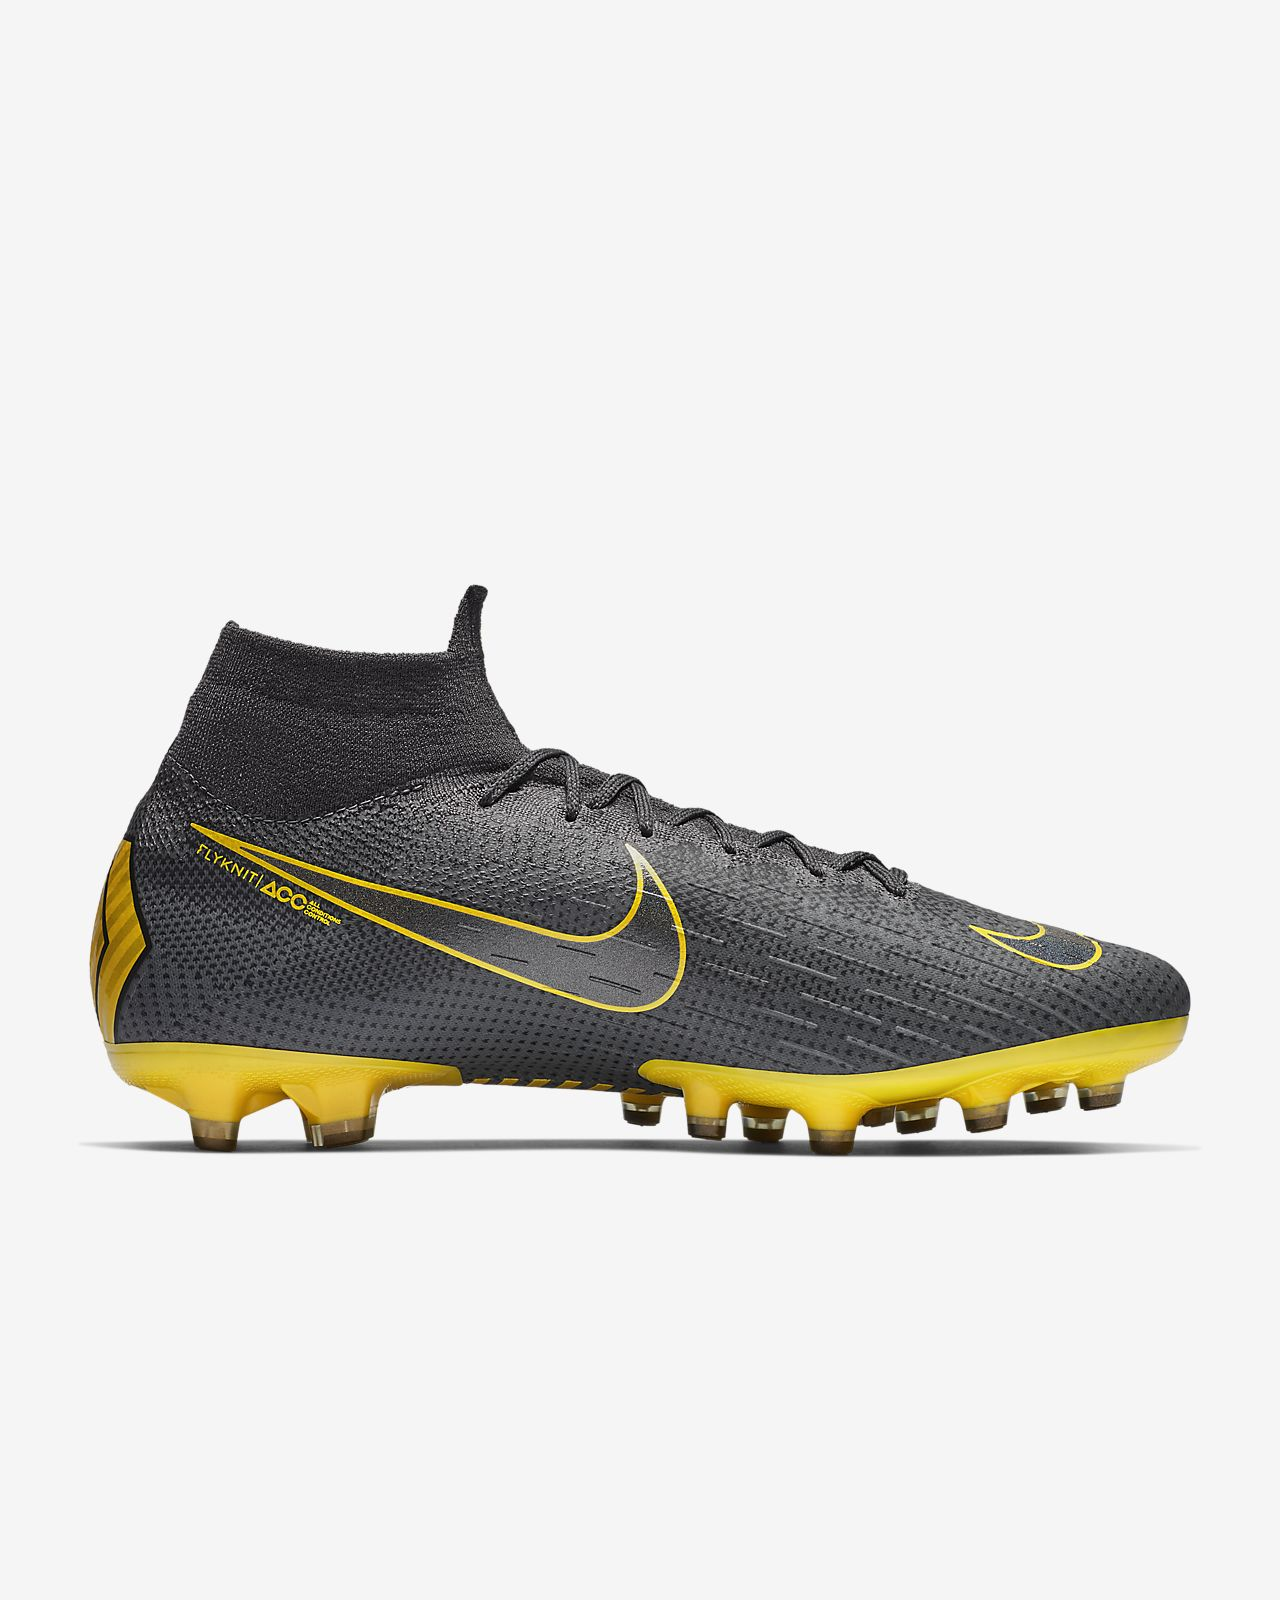 newest 27baa 926a5 nike ag Nike Mercurial Superfly 360 Elite AG-PRO ...